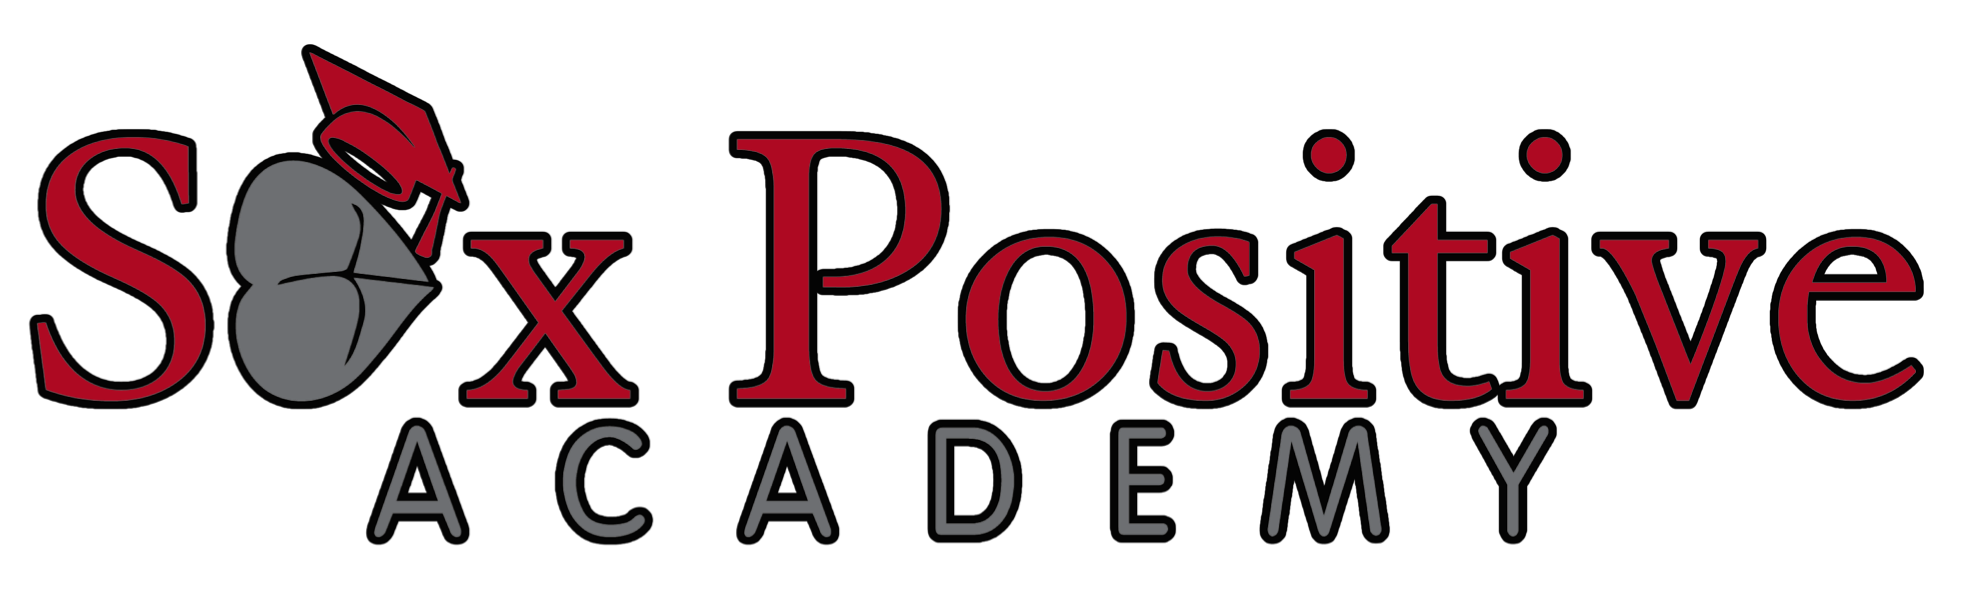 Sex Positive Academy